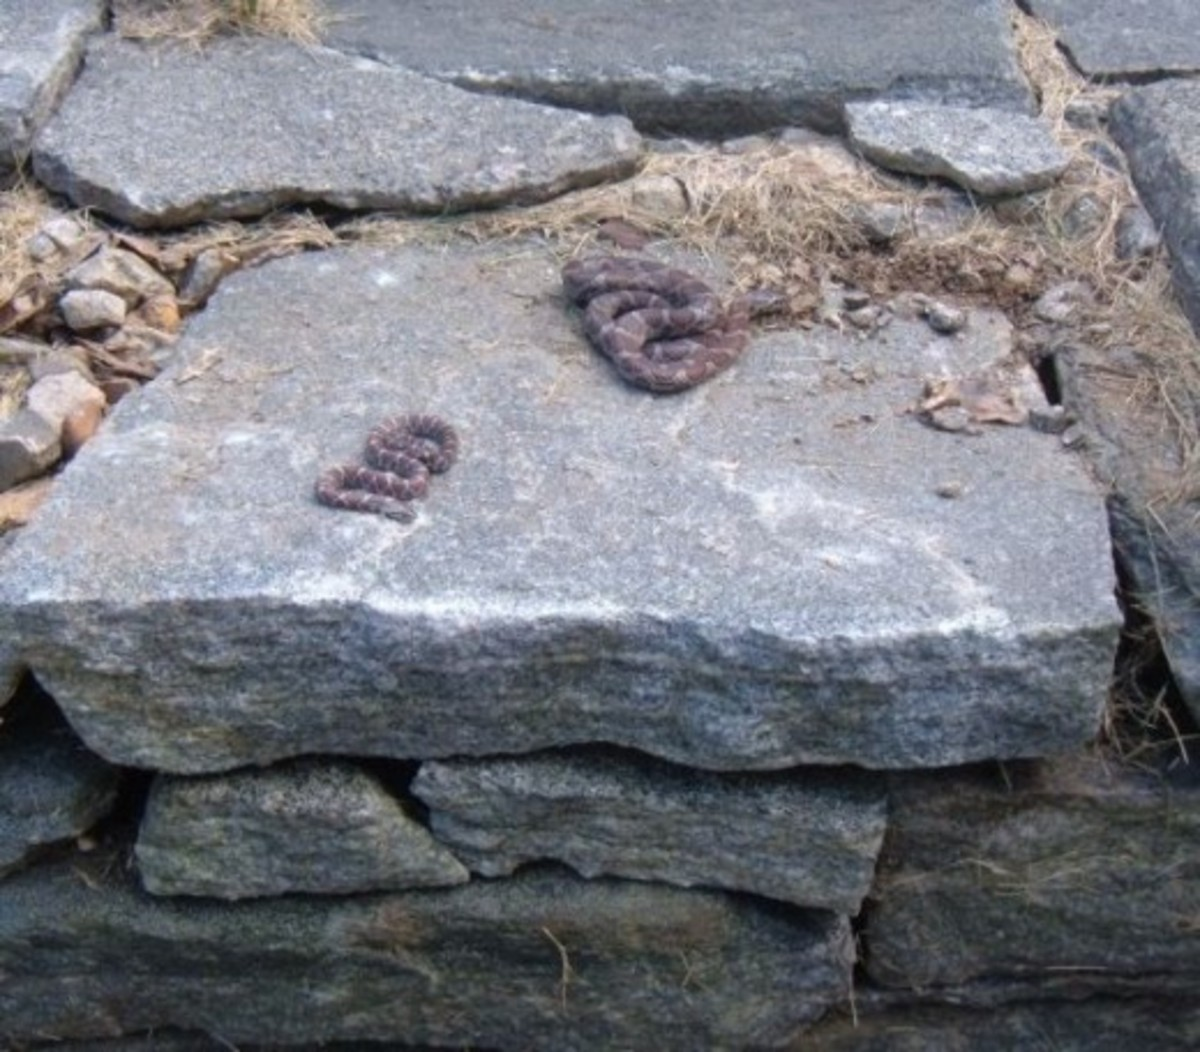 Milk Snakes on a Fieldstone Wall